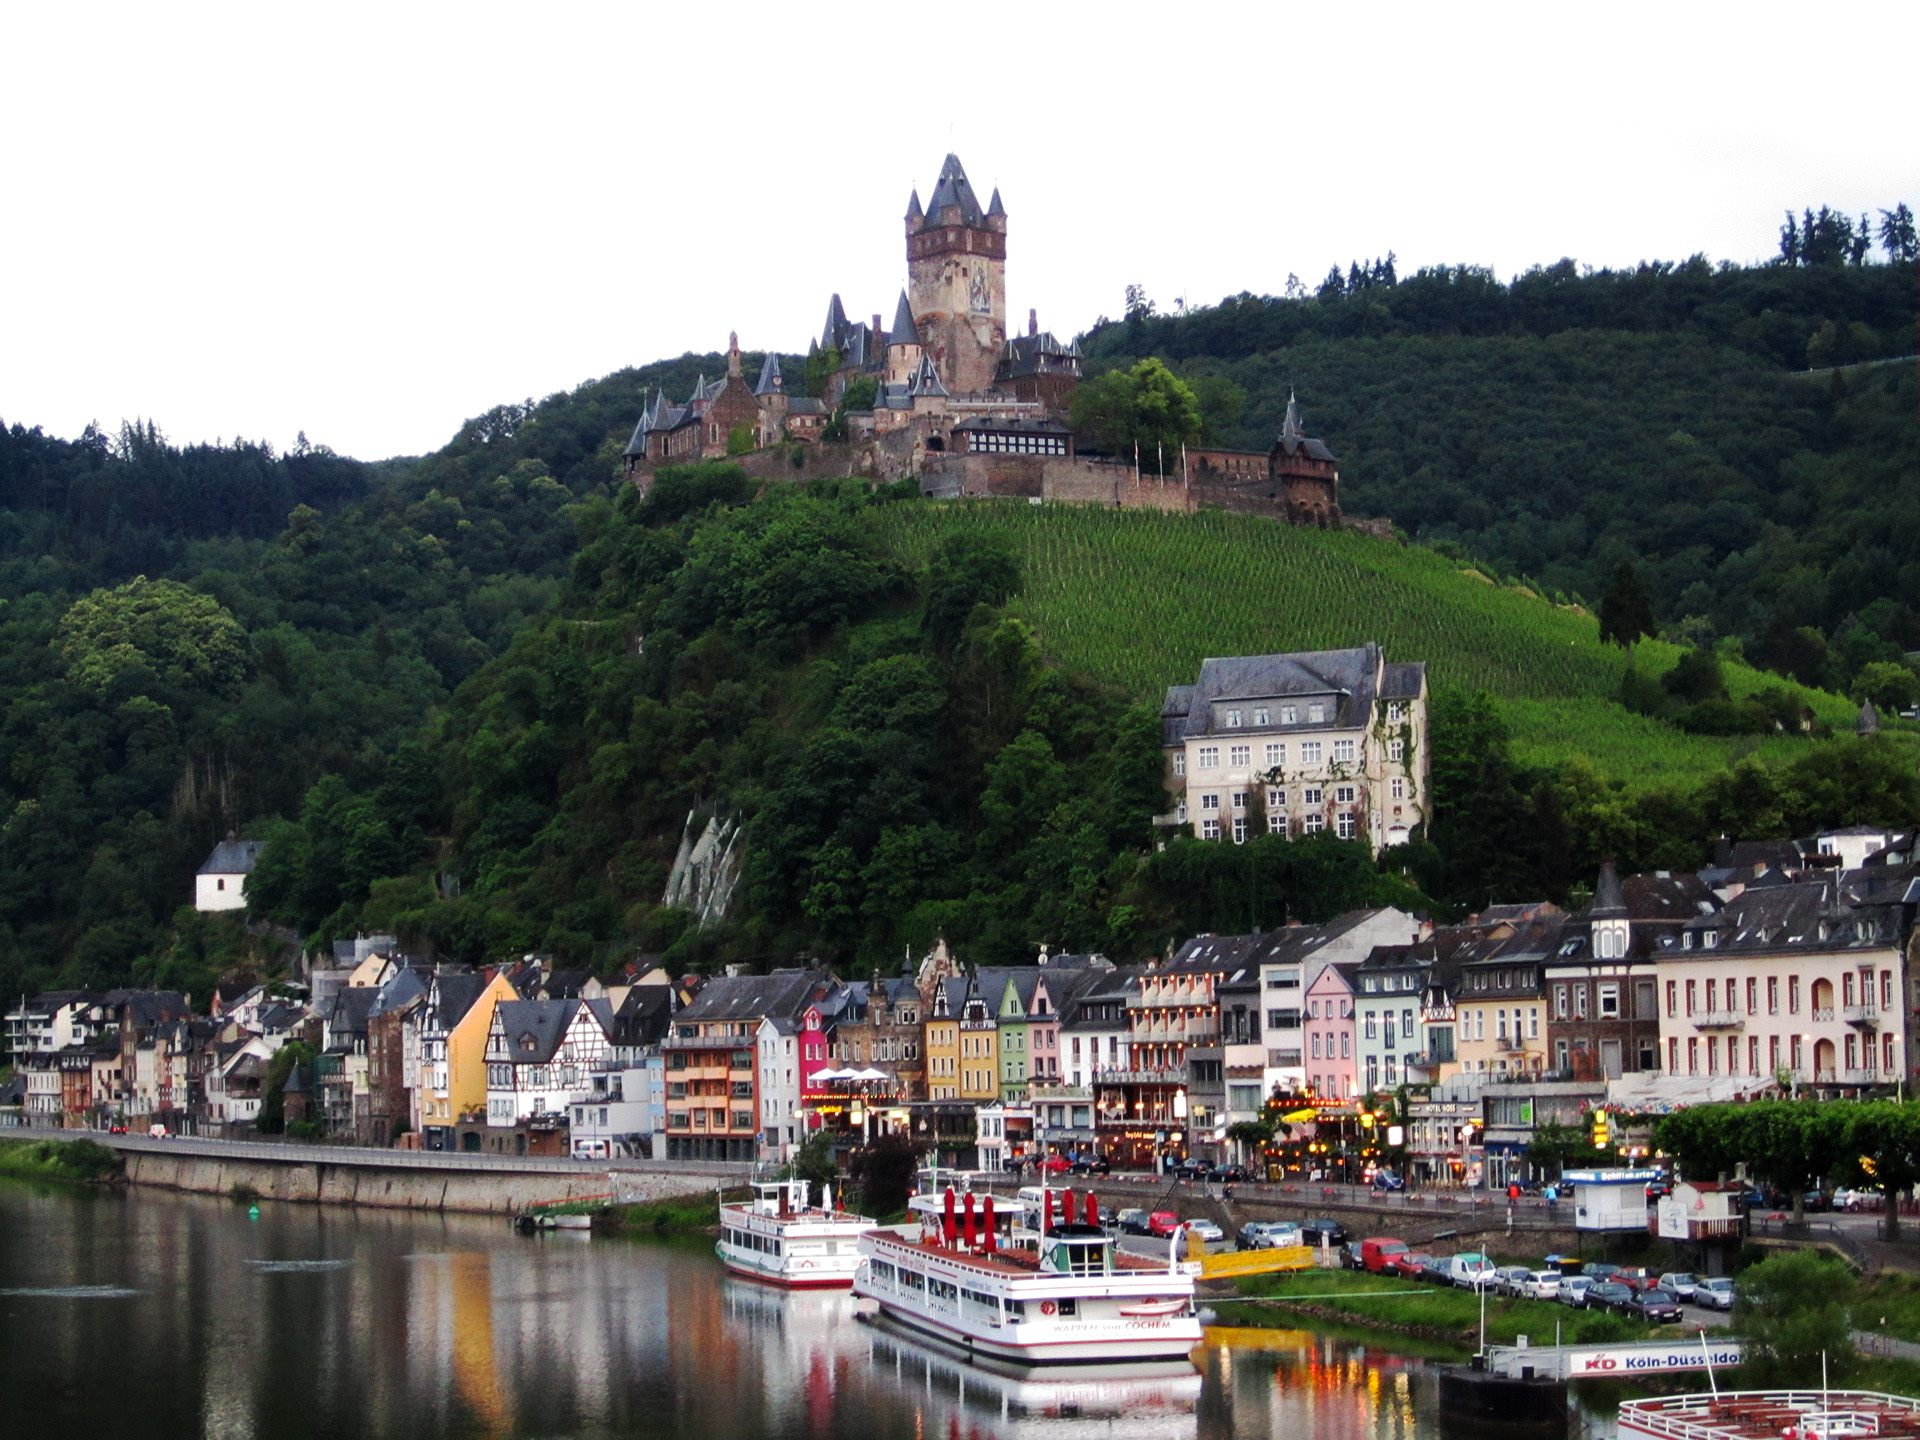 Looking towards Cochem and Reichsburg Castle from the bridge over the Moselle River.